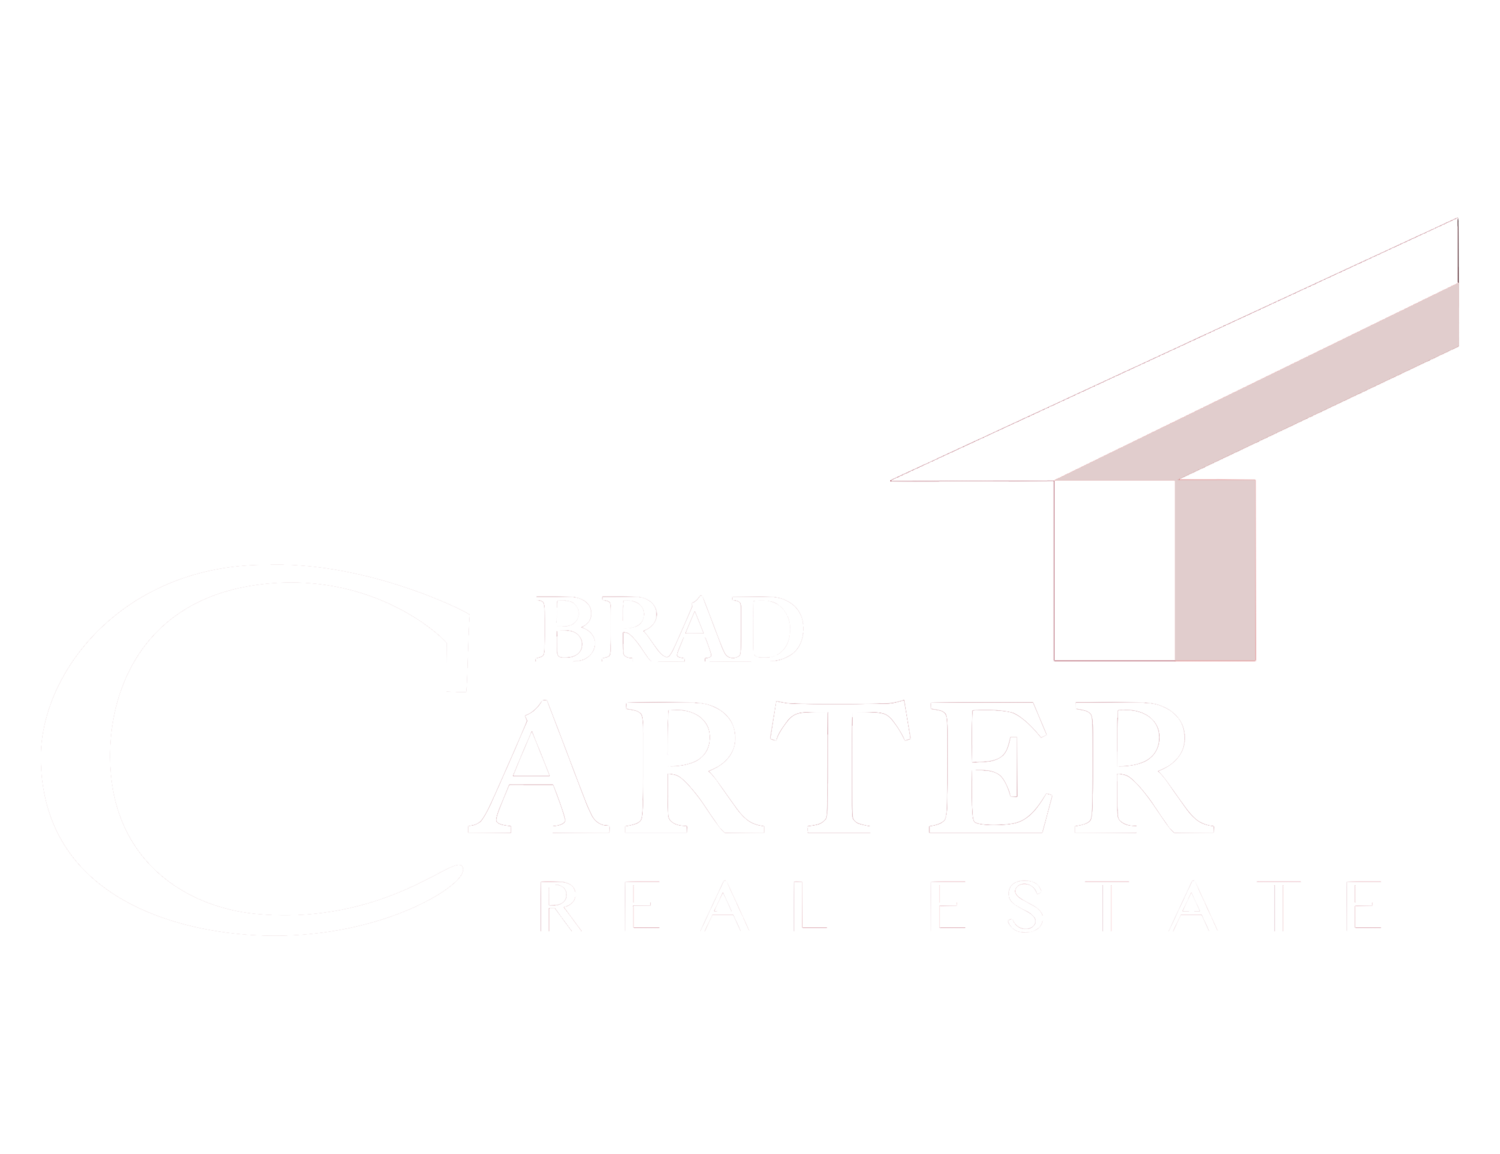 Brad Carter Real Estate